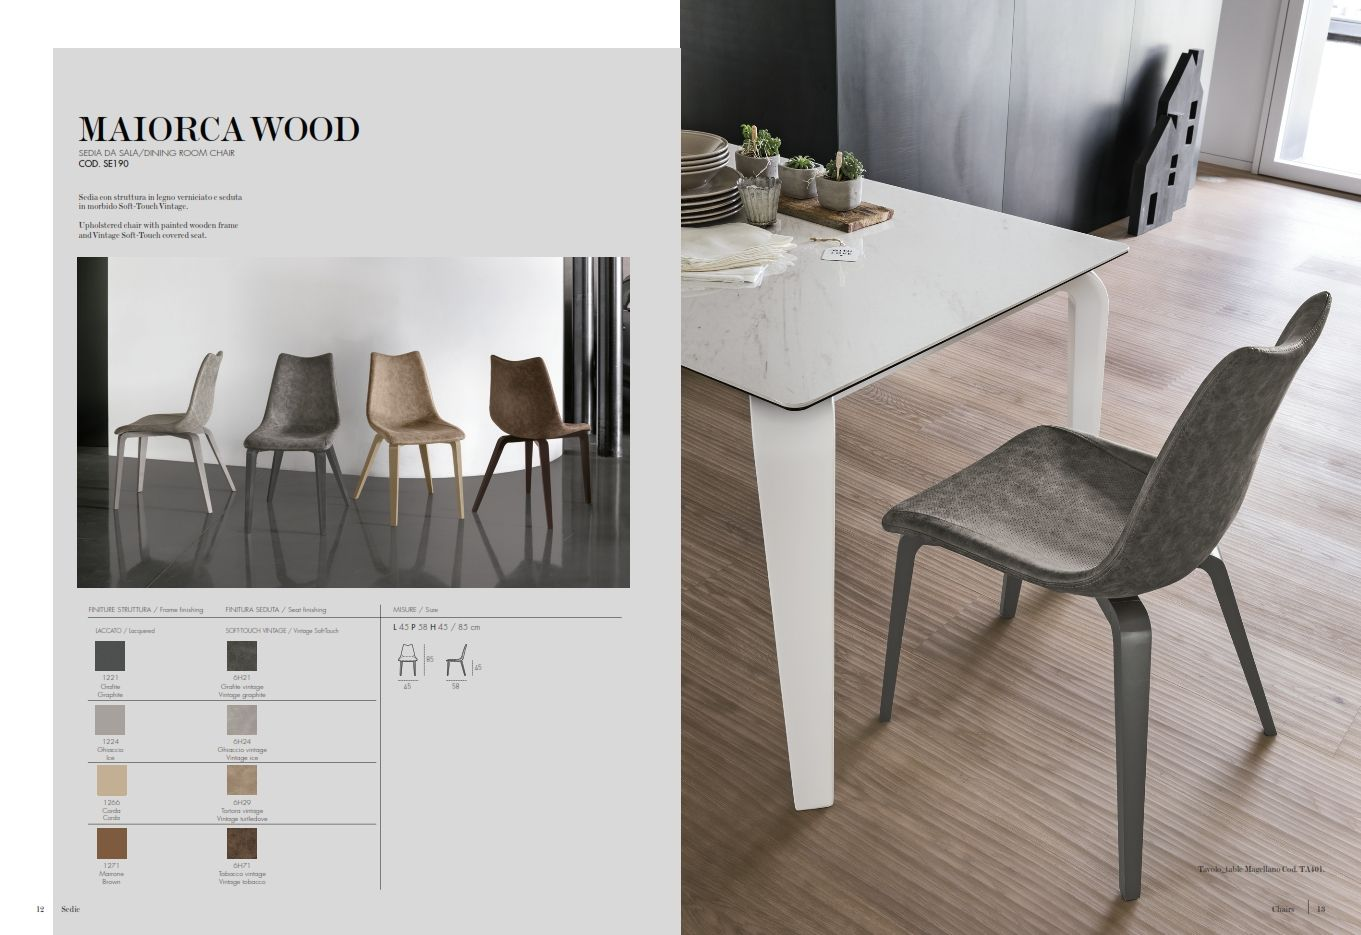 Dining chair target point maiorca wood series